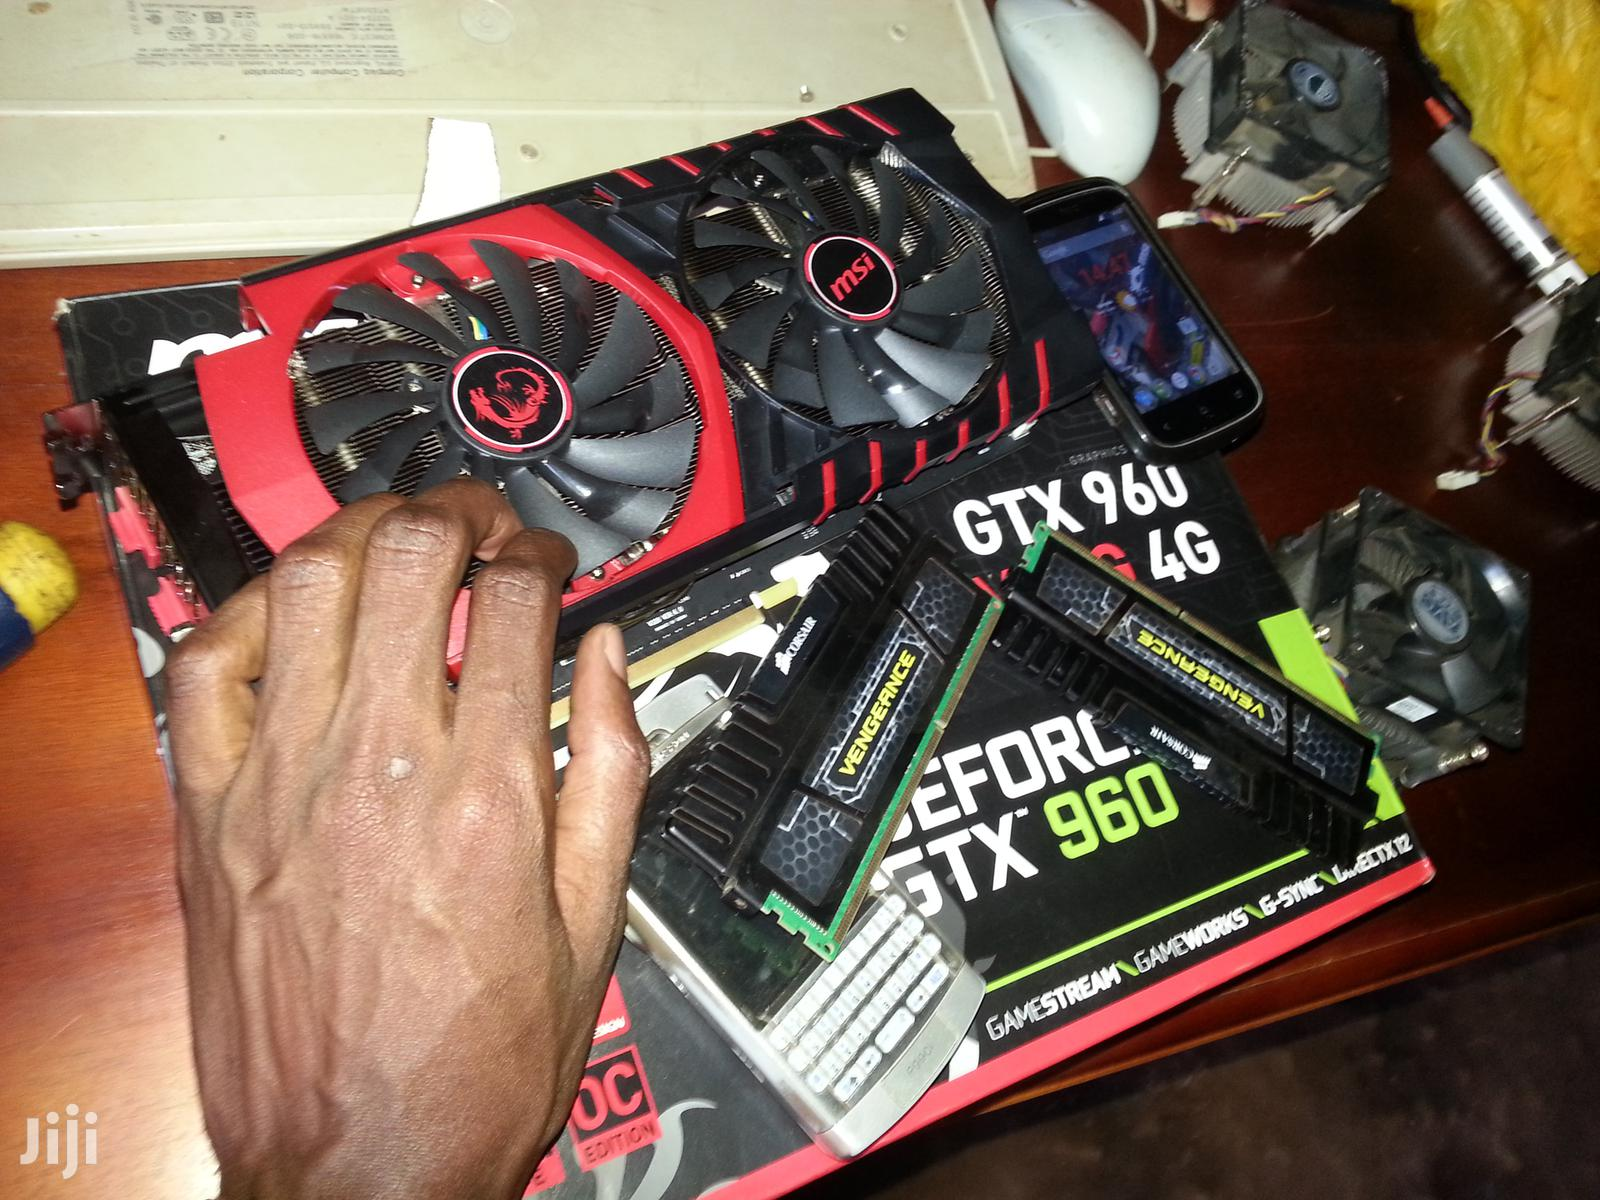 Archive: Msi Nvidia Geforce GTX 960 4GB GDDR5 OC Gaming X Graphics Card